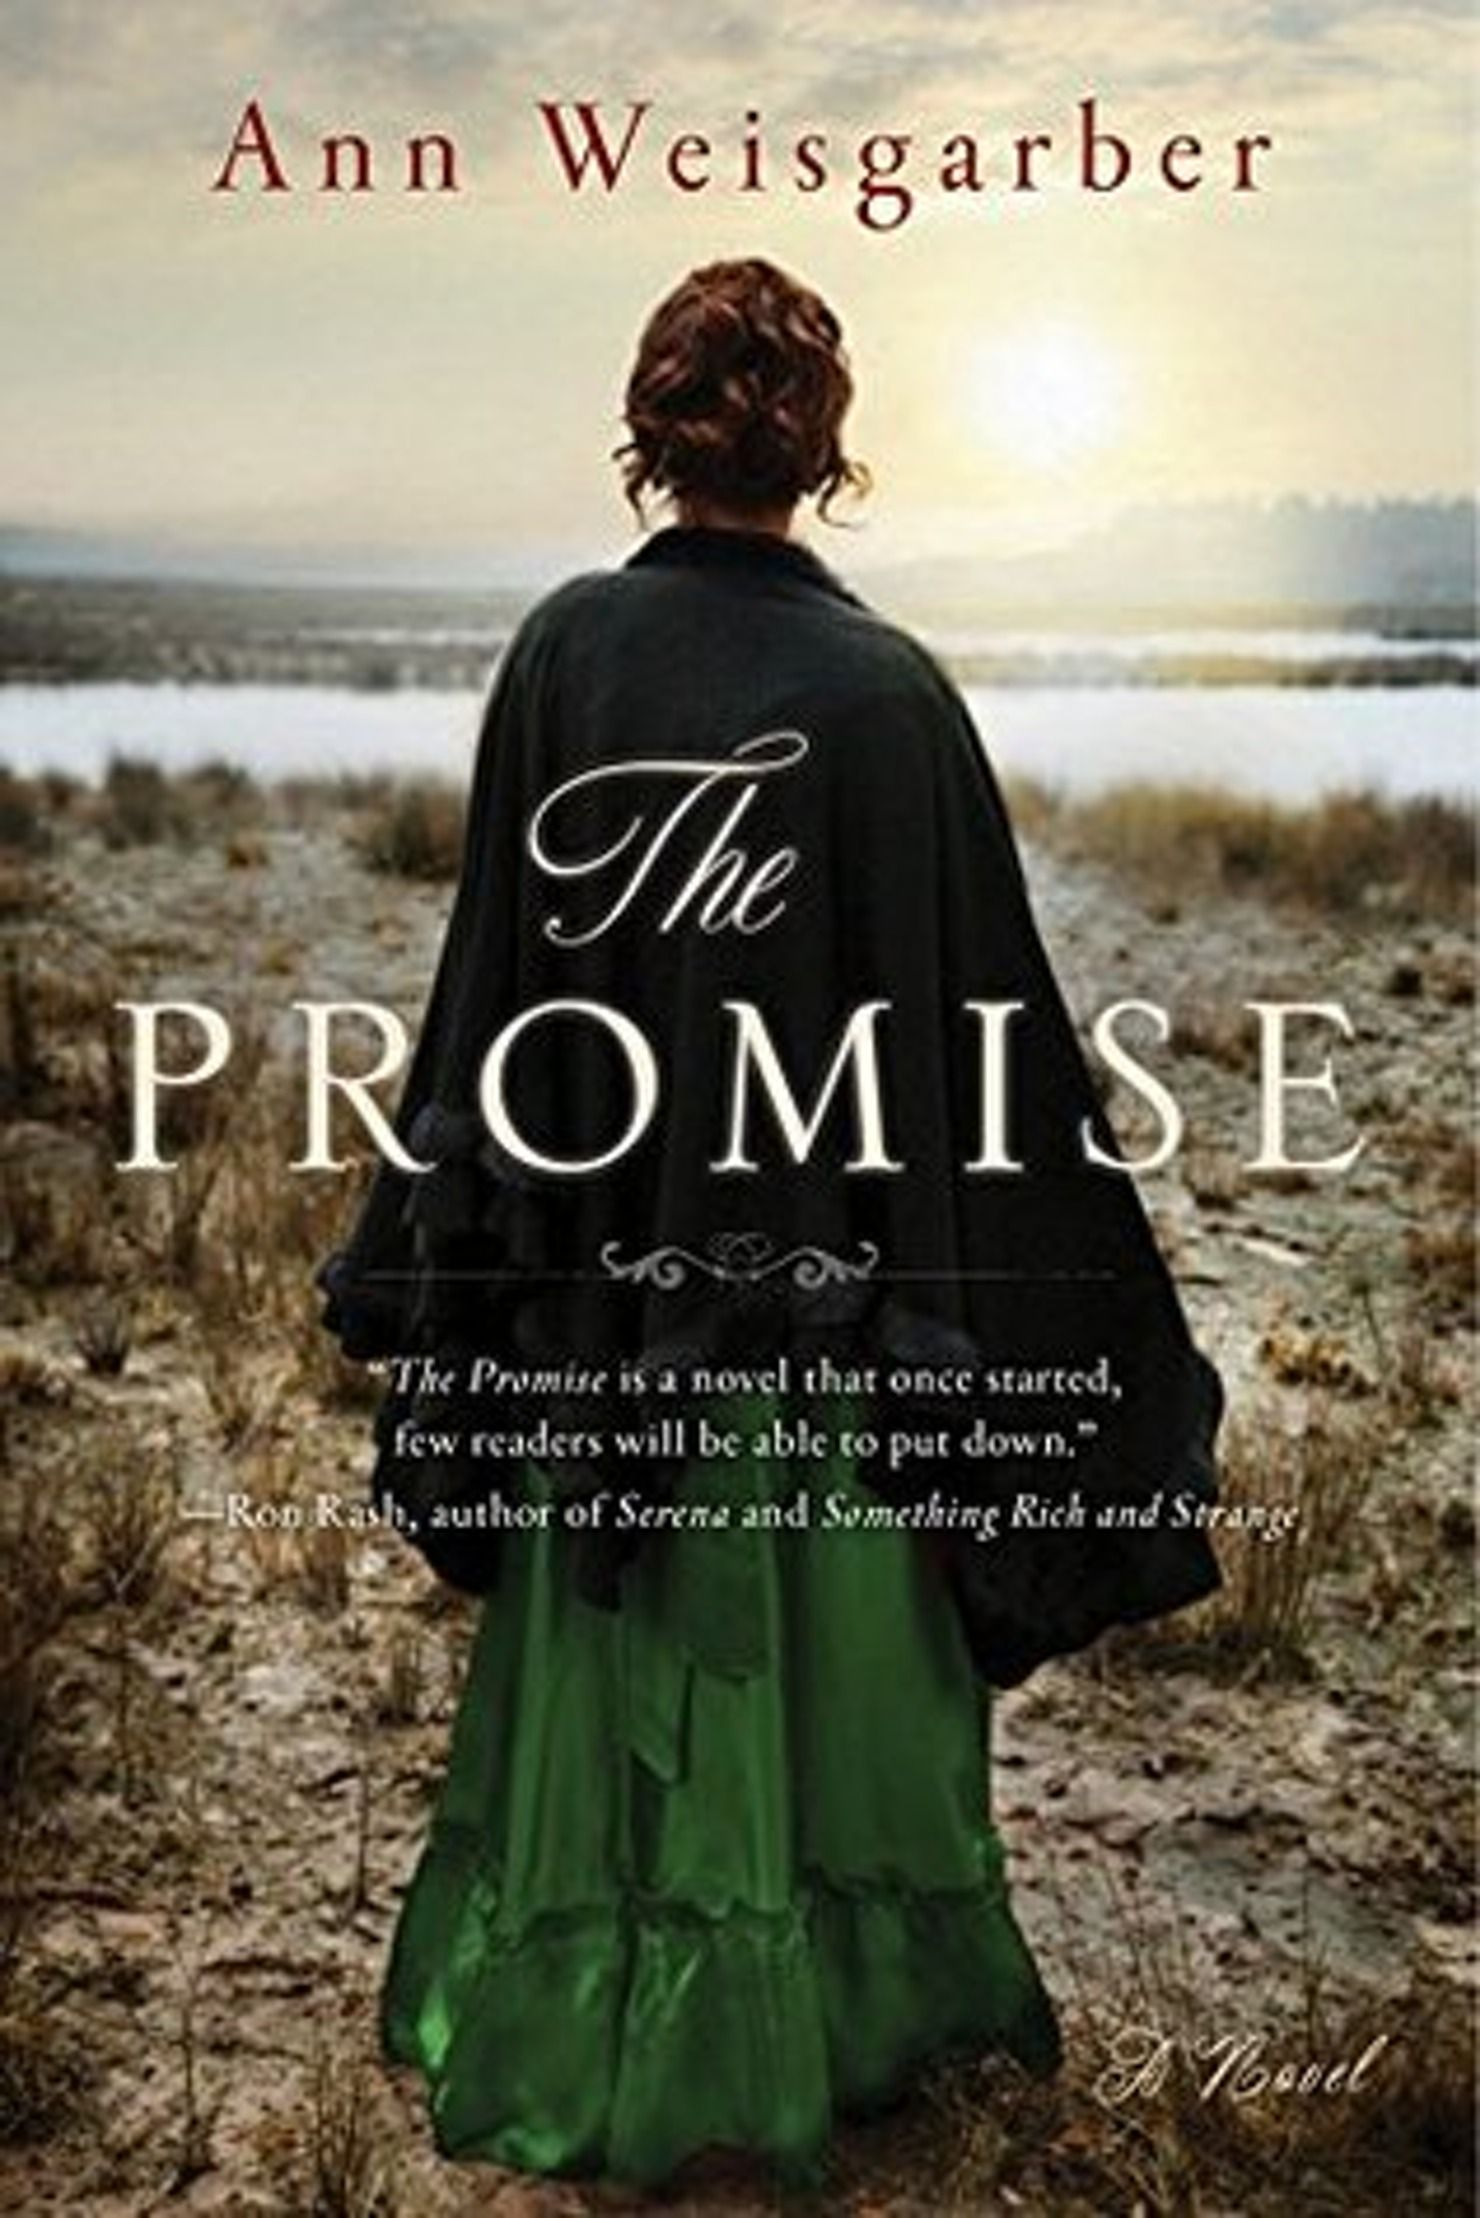 13 Exciting Historical Fiction Books By Women That Will Make You